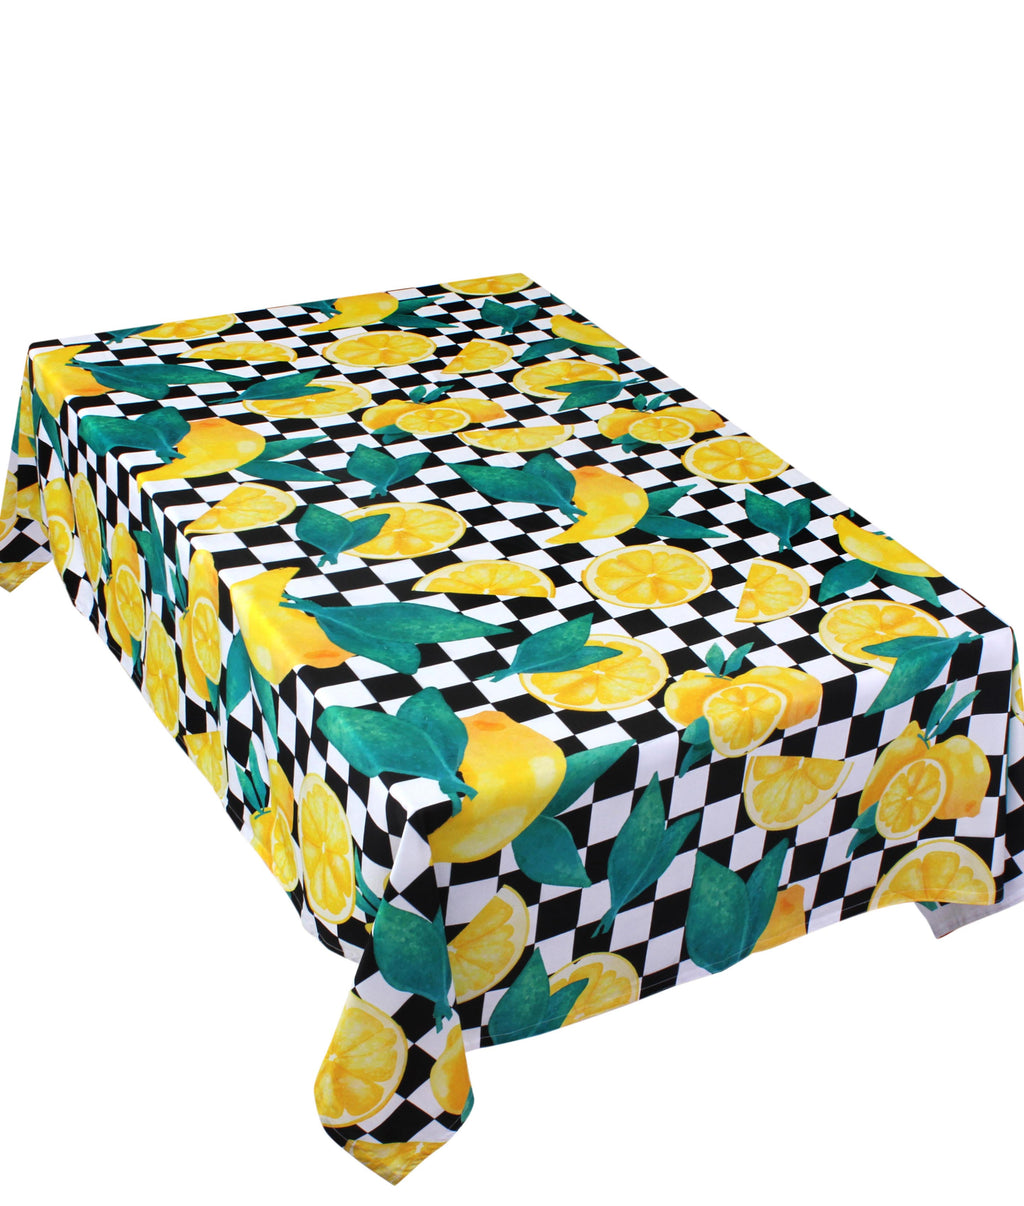 The Chess Board Table Cover